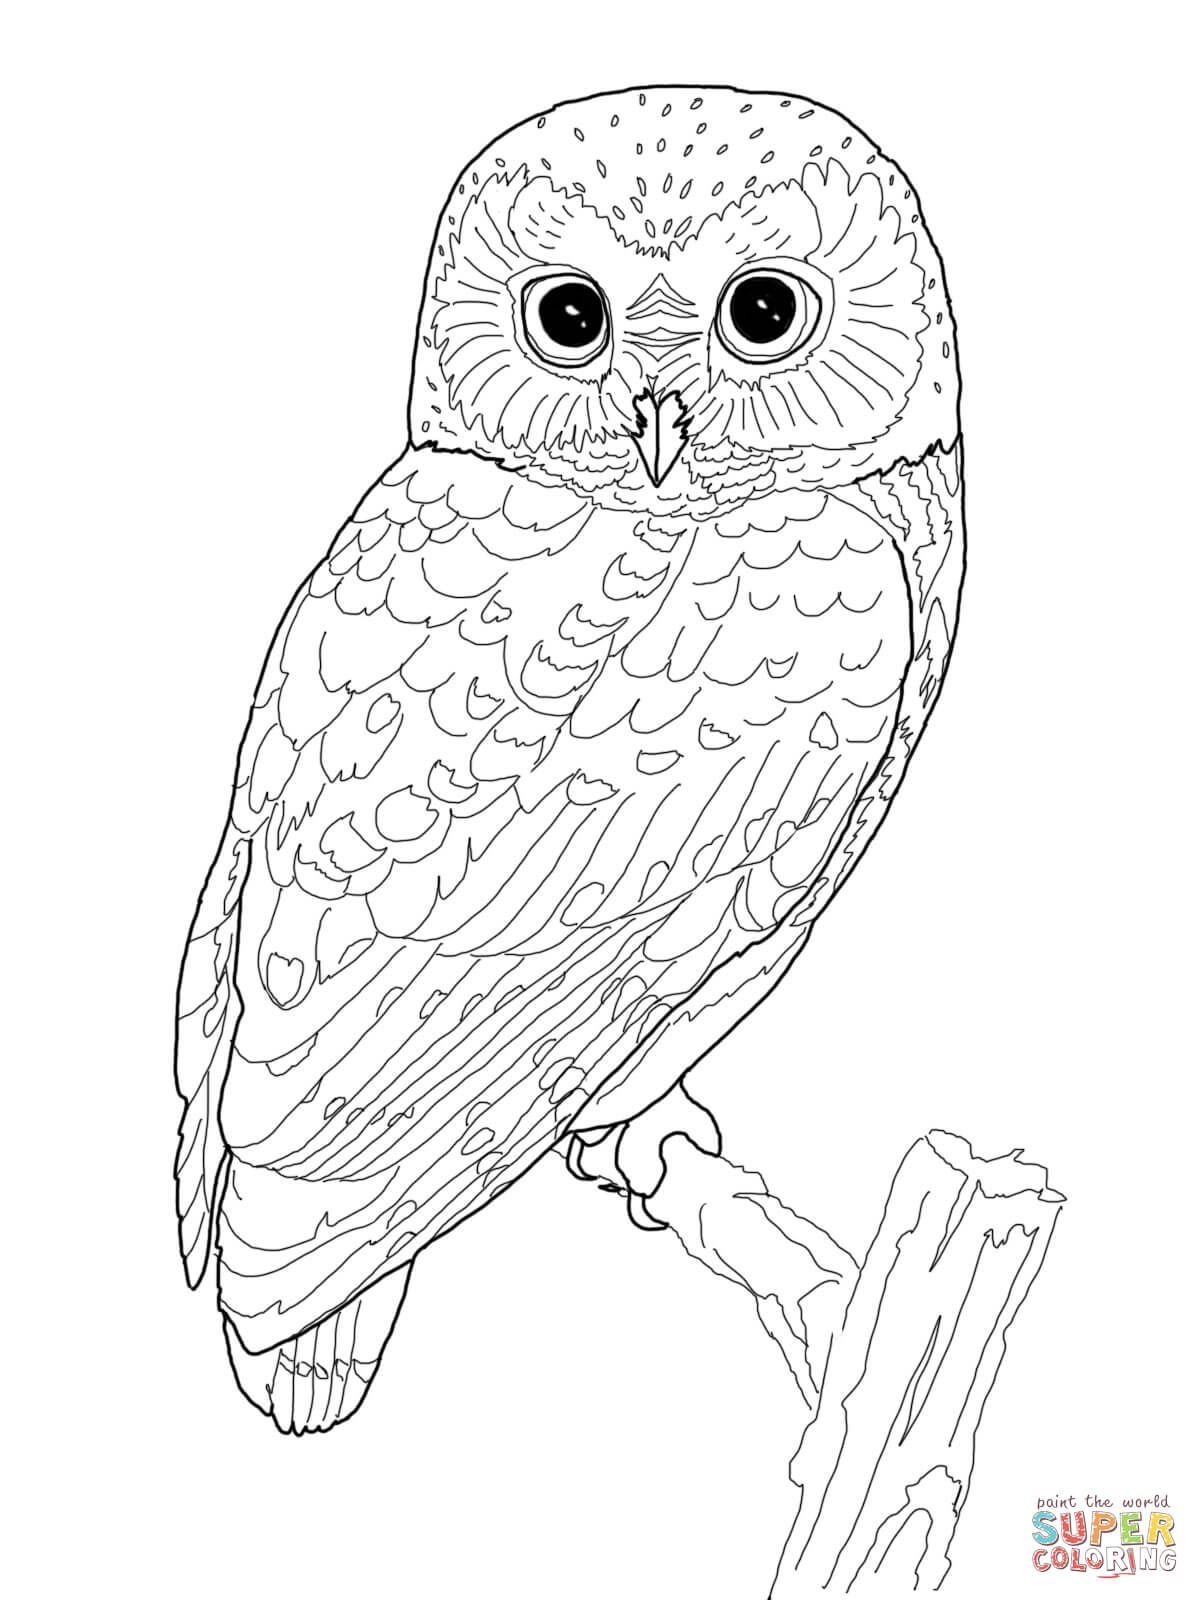 Pin By Małgorzata Ki A On Coloring Pages Owls Pinterest Owl